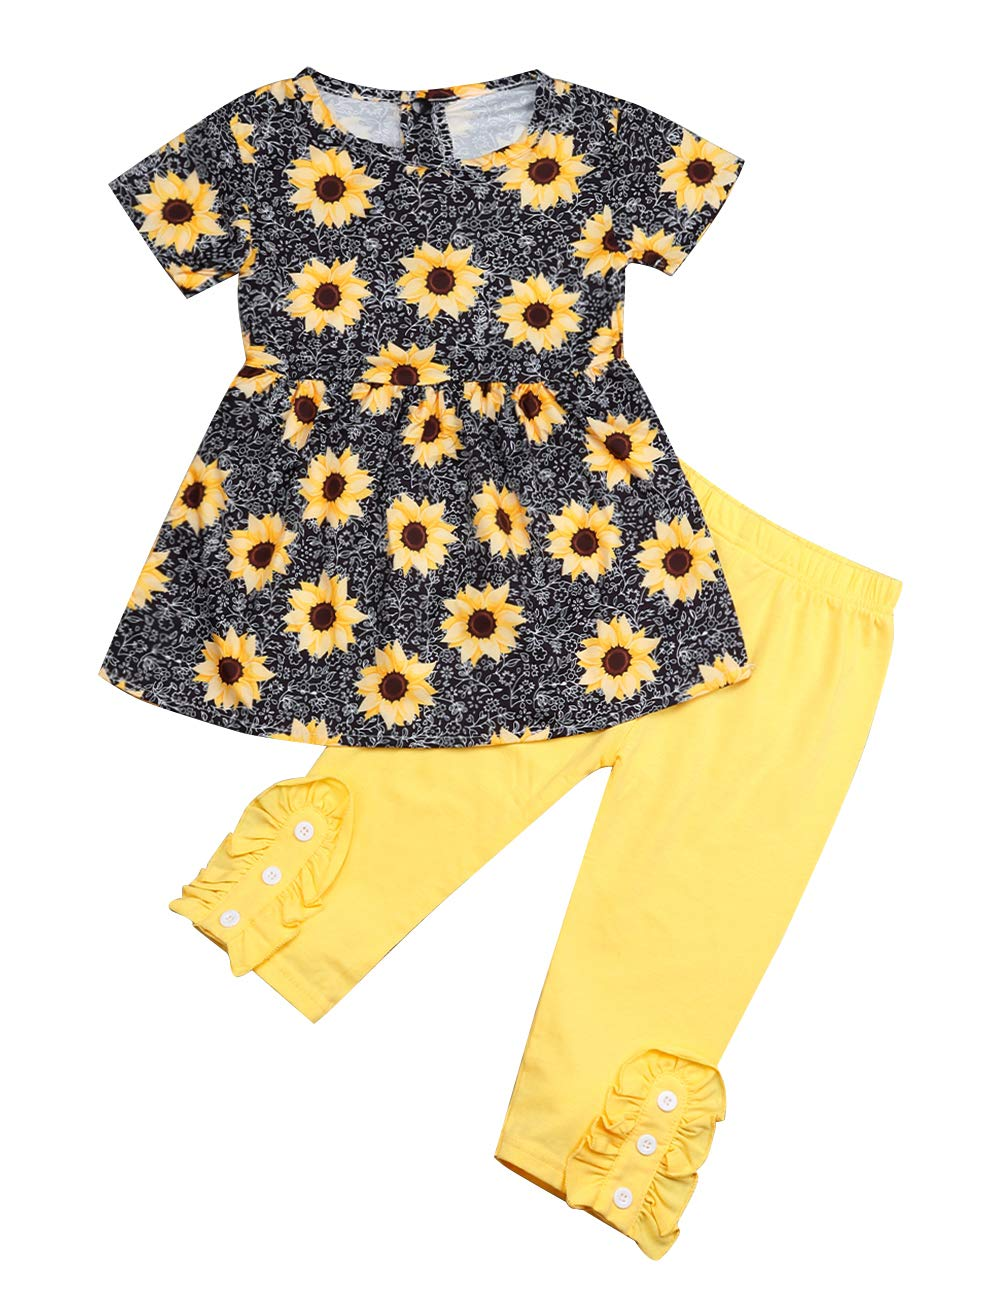 Toddler Girl Clothes Little Kid Sunflower Short Sleeve Top and Solid Color Pants with Headband Floral Outfit Set